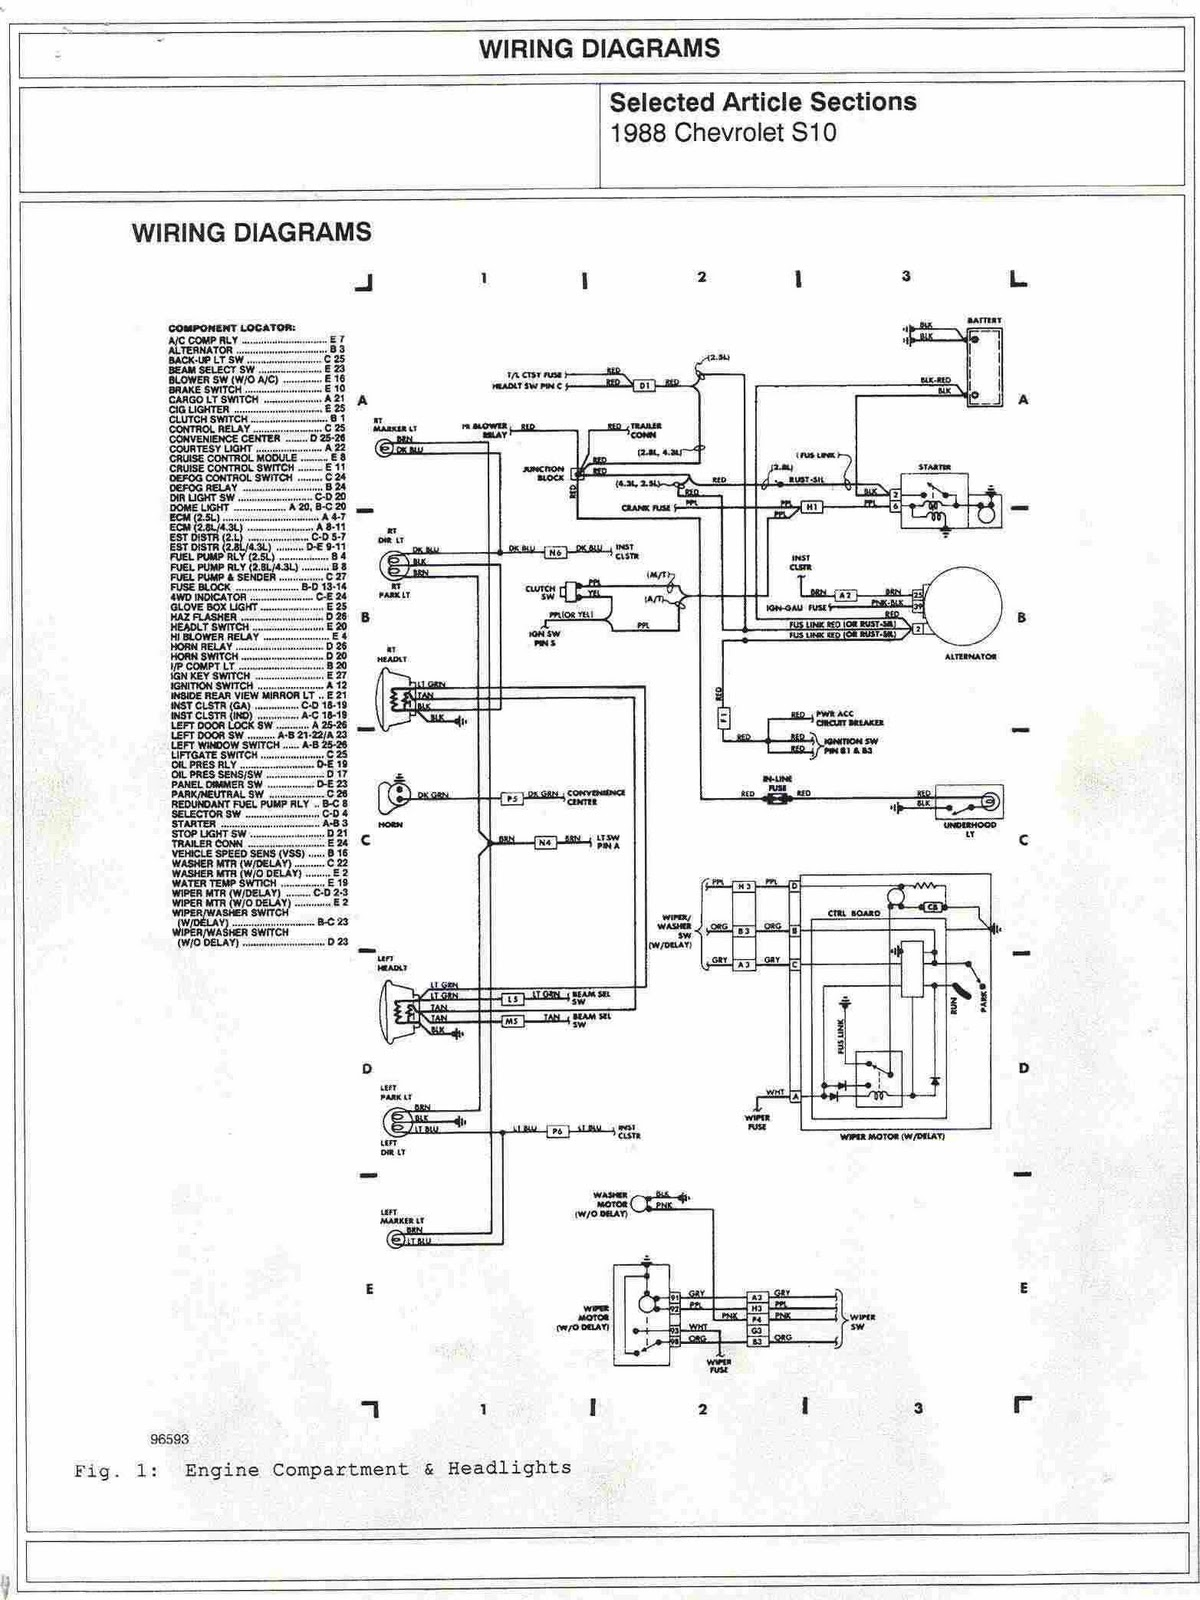 1988+Chevrolet+S10+Engine+Compartment+and+Headlights+Wiring+Diagrams 95 s10 wiring diagram 95 tahoe wiring diagram \u2022 wiring diagrams  at eliteediting.co